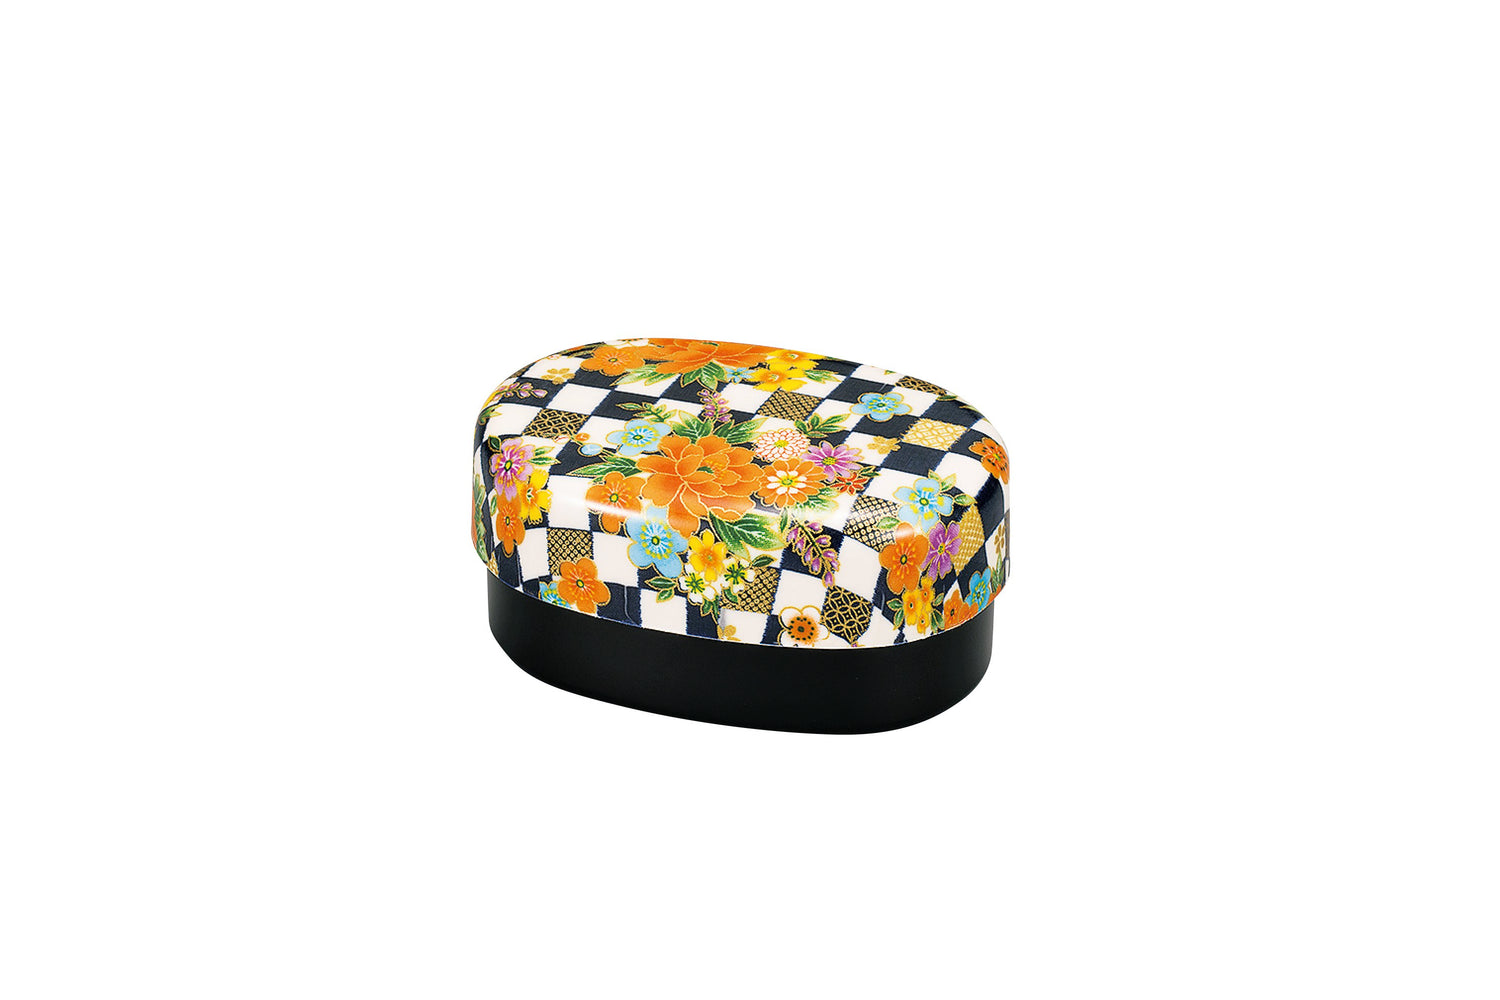 Ichimatsu Flower Bento Box Small Navy by Hakoya - Bento&co Japanese Bento Lunch Boxes and Kitchenware Specialists